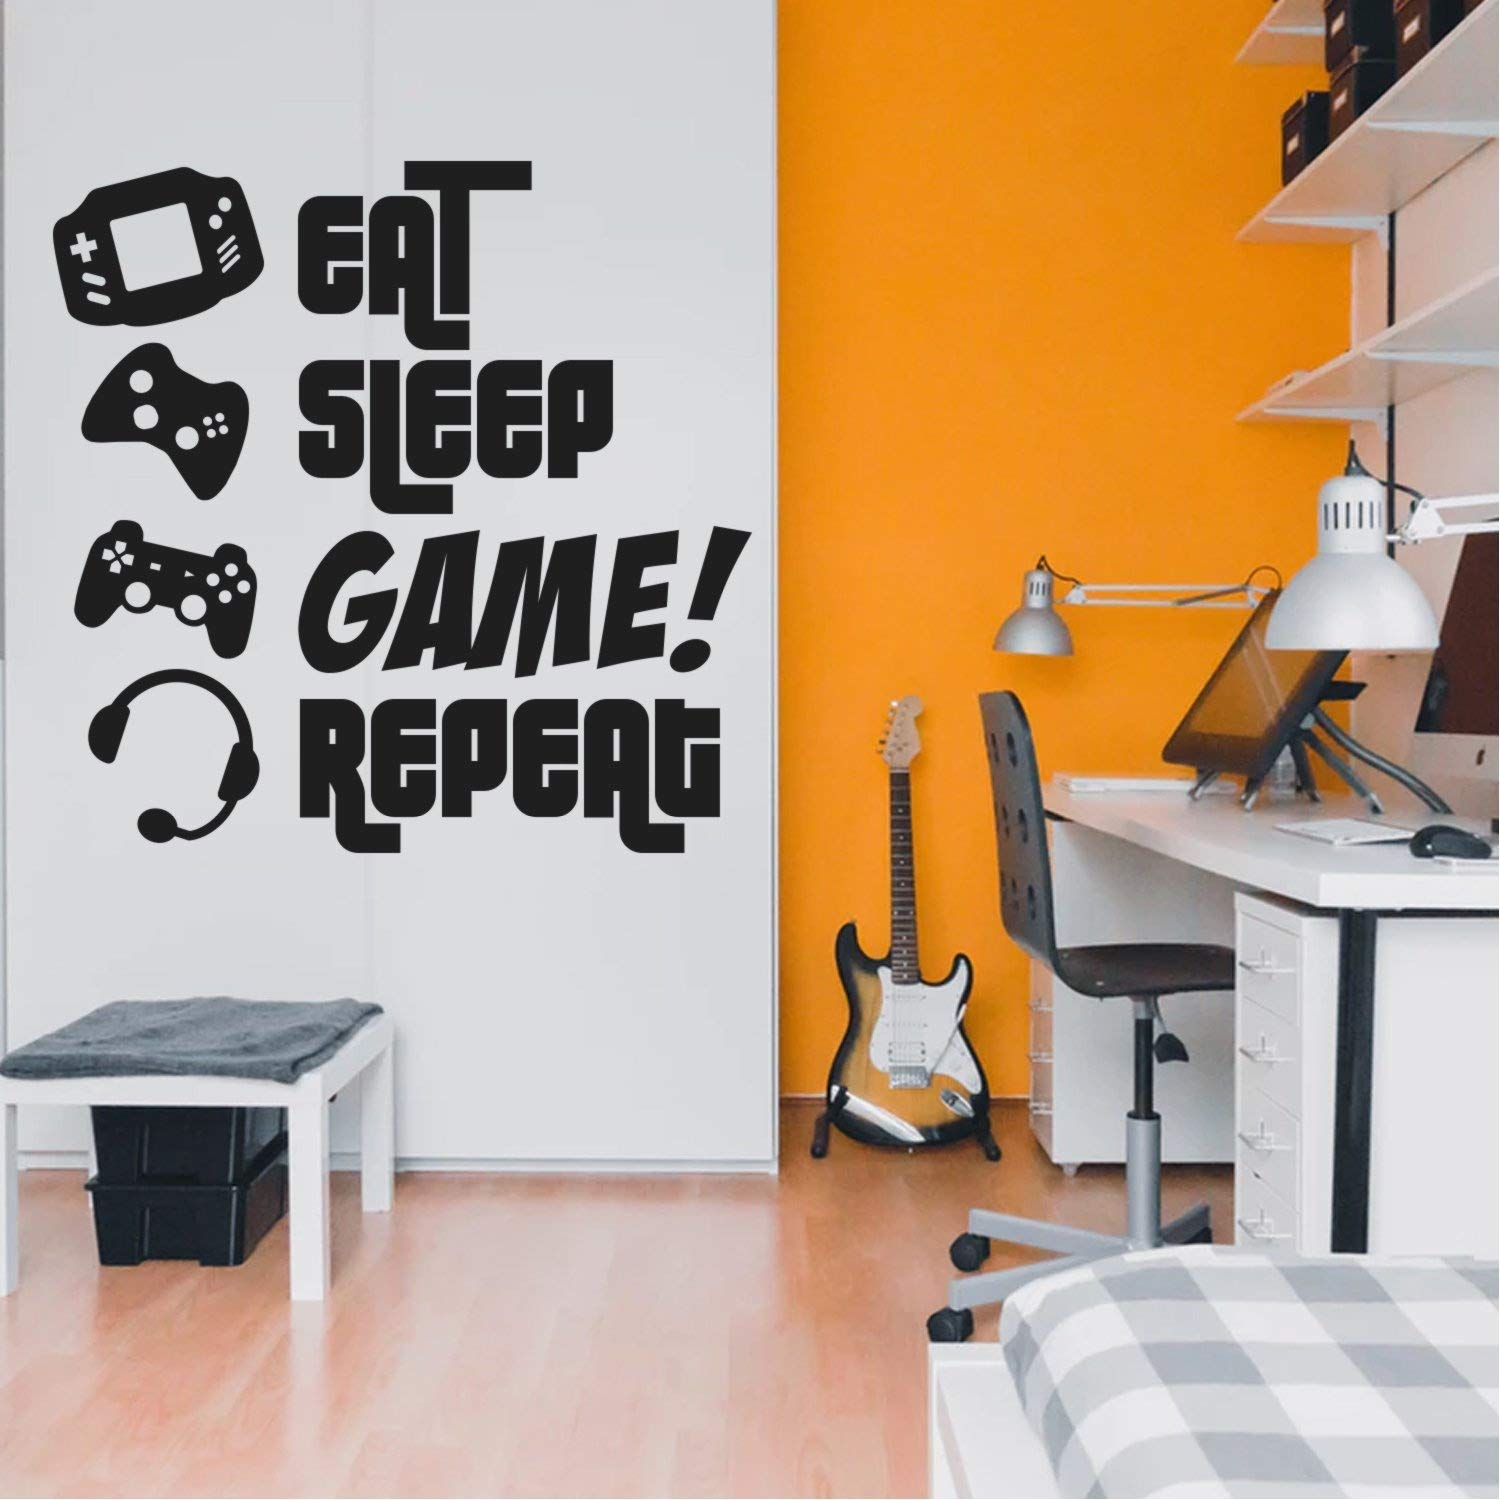 EAT, SLEEP, GAME, REPEAT - Gamers Wall Art Vinyl Decal - Video Gamers Cool  Wall Decor- Decoration Vinyl Sticker - Teen Boys Room Decor - Boys Bedroom  ...